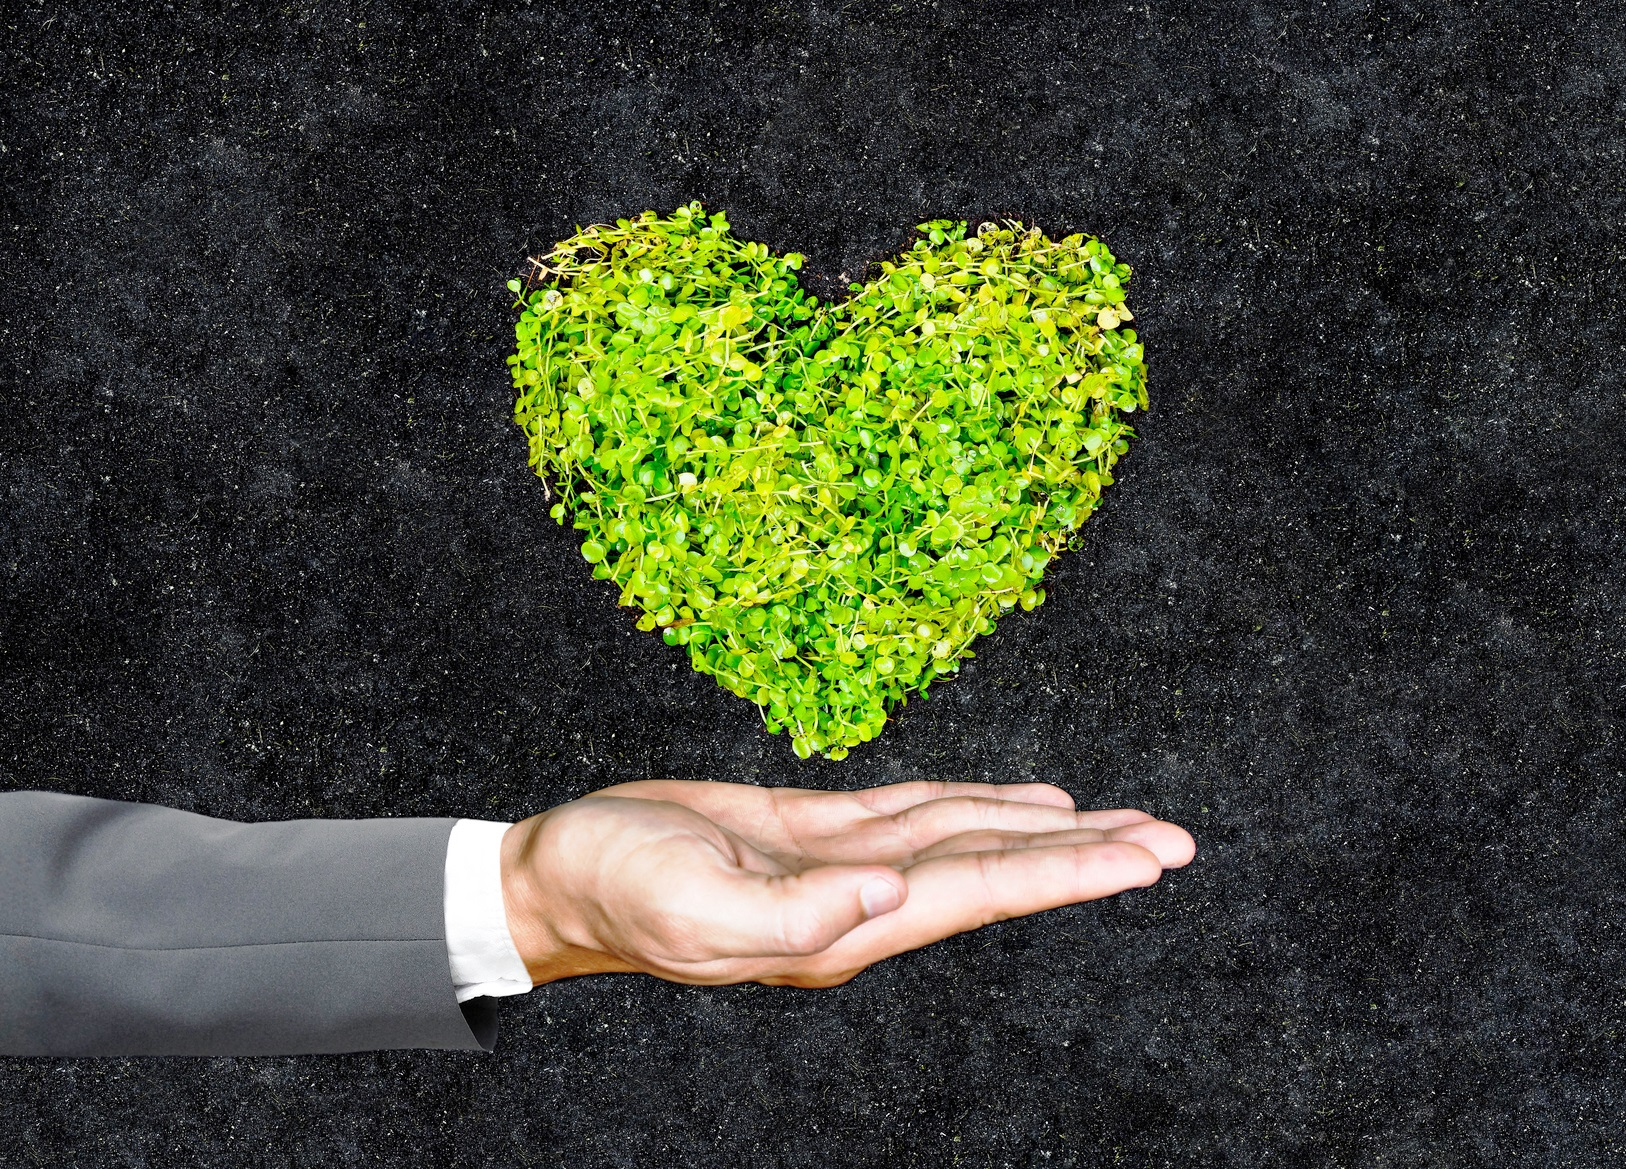 Sustainability is at the heart of PAC